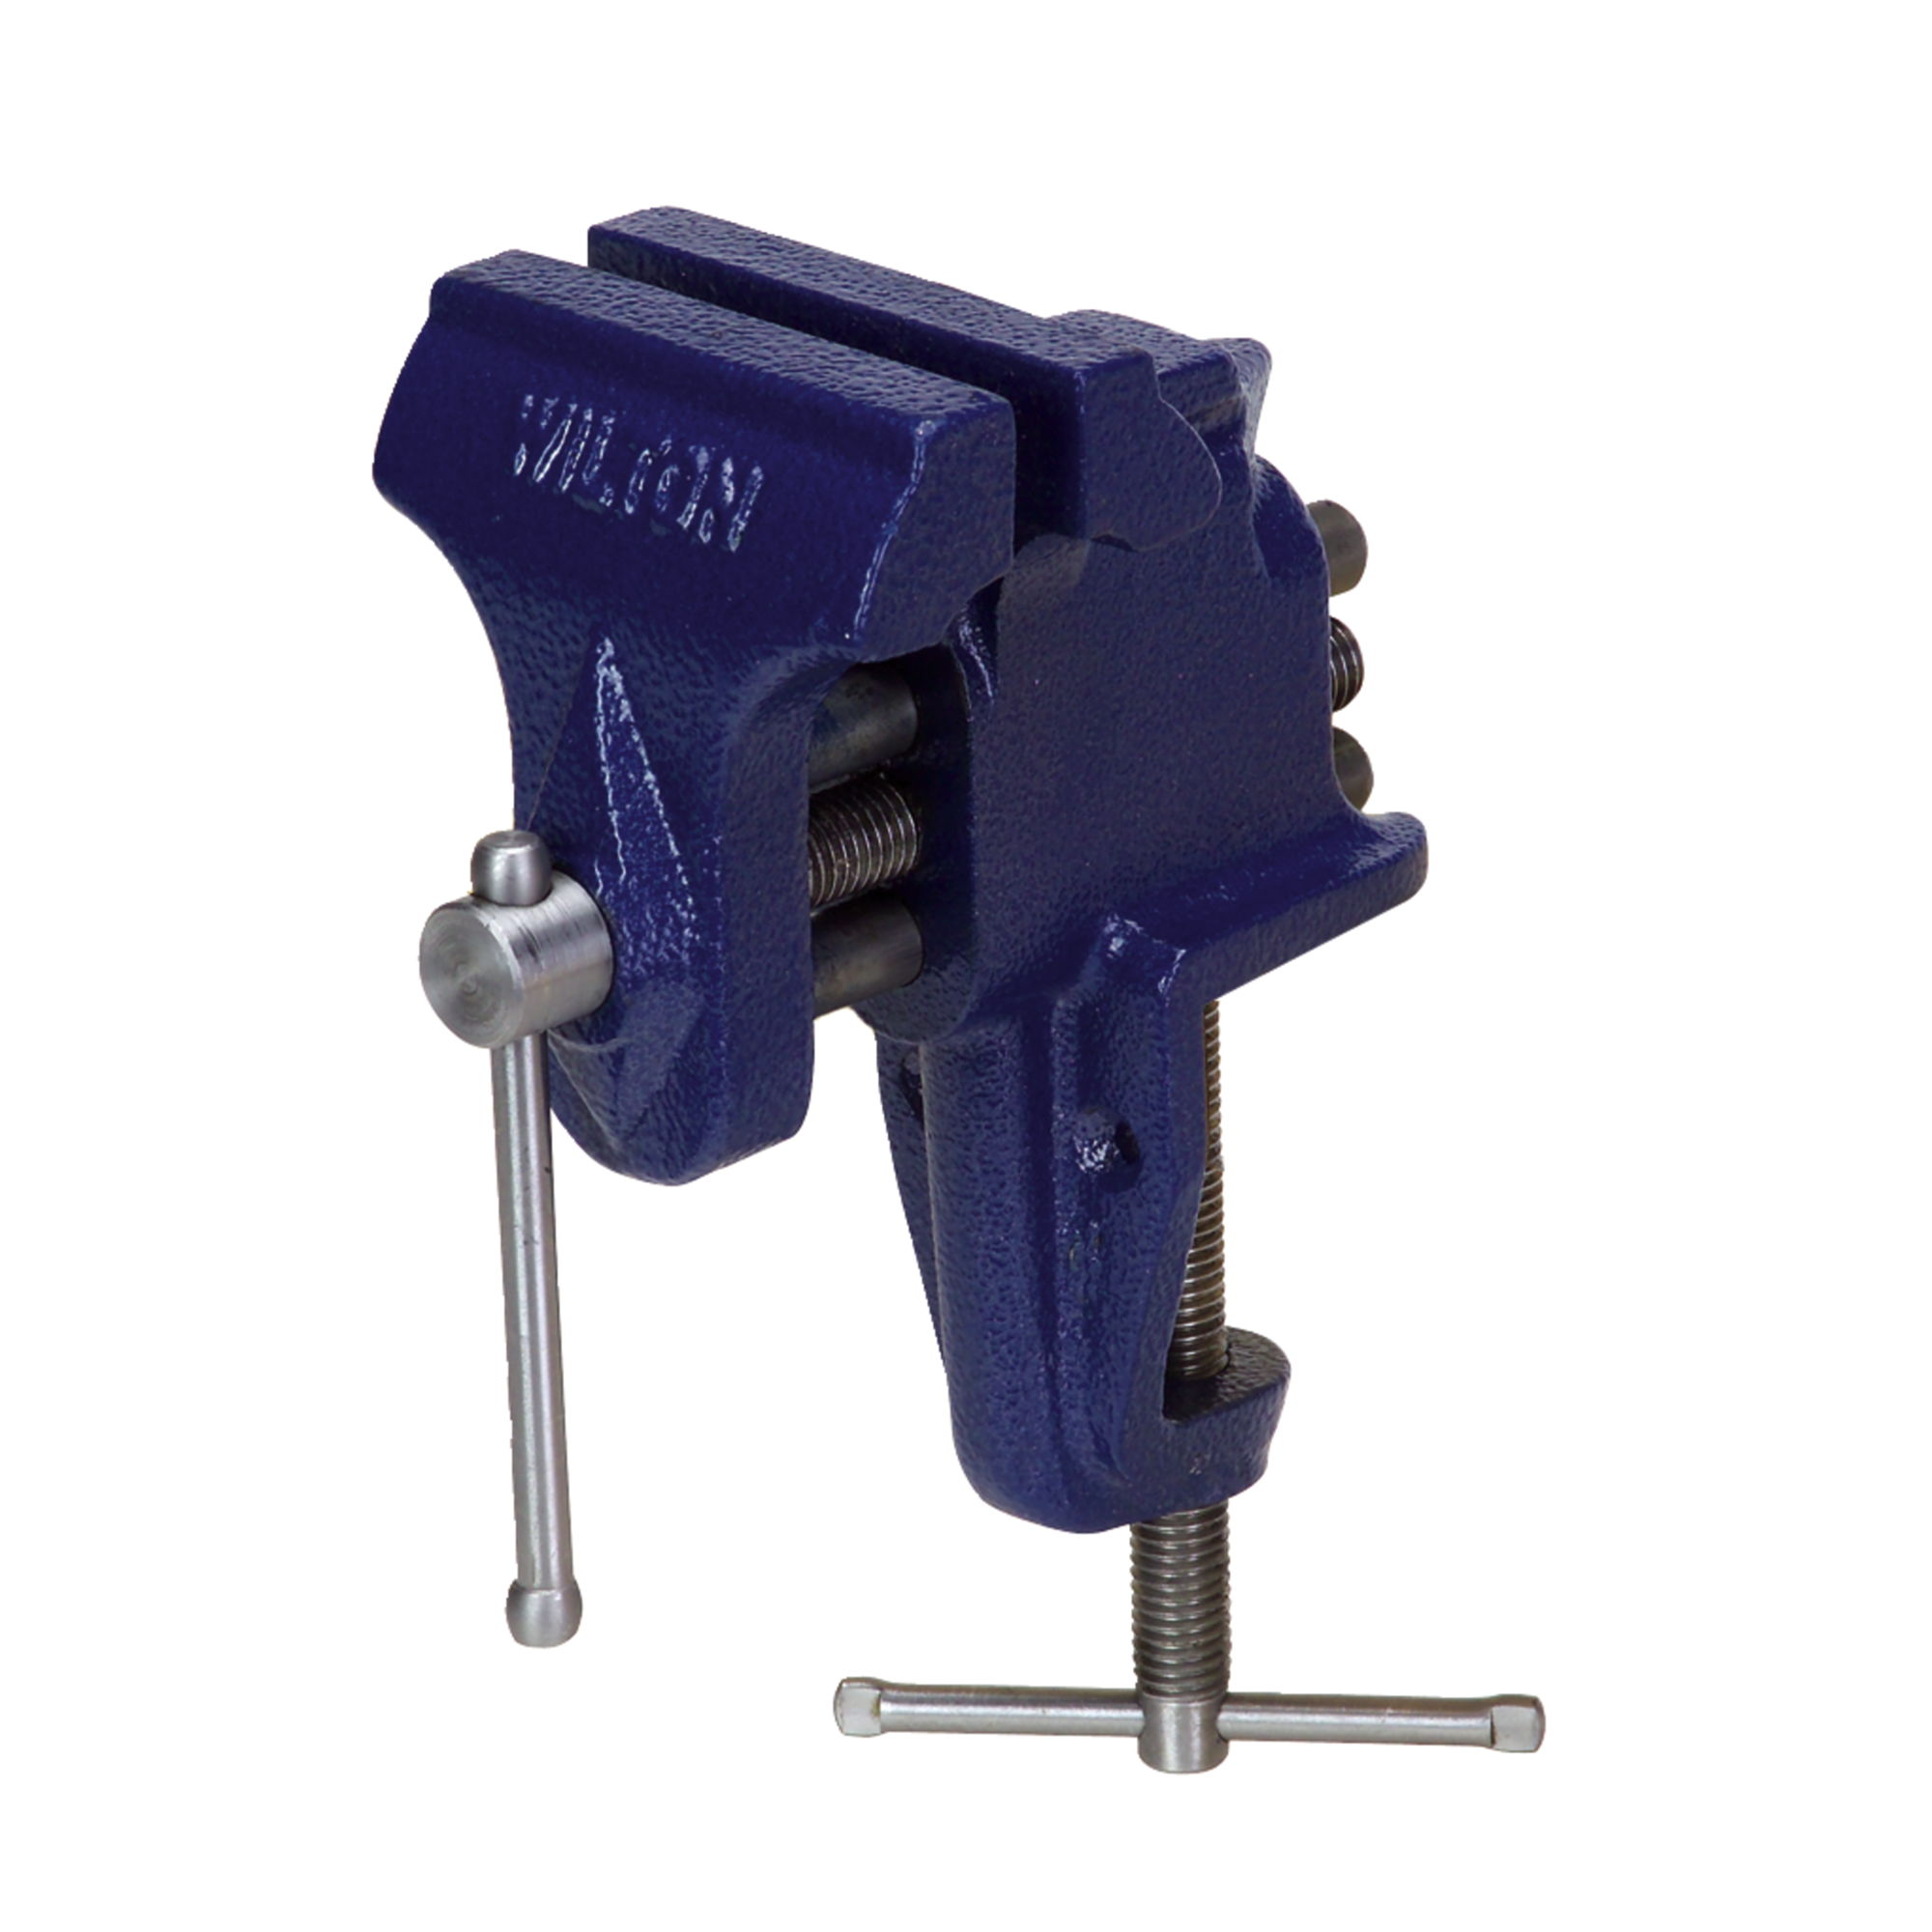 Wilton quot jaw clamp on bench vise opening